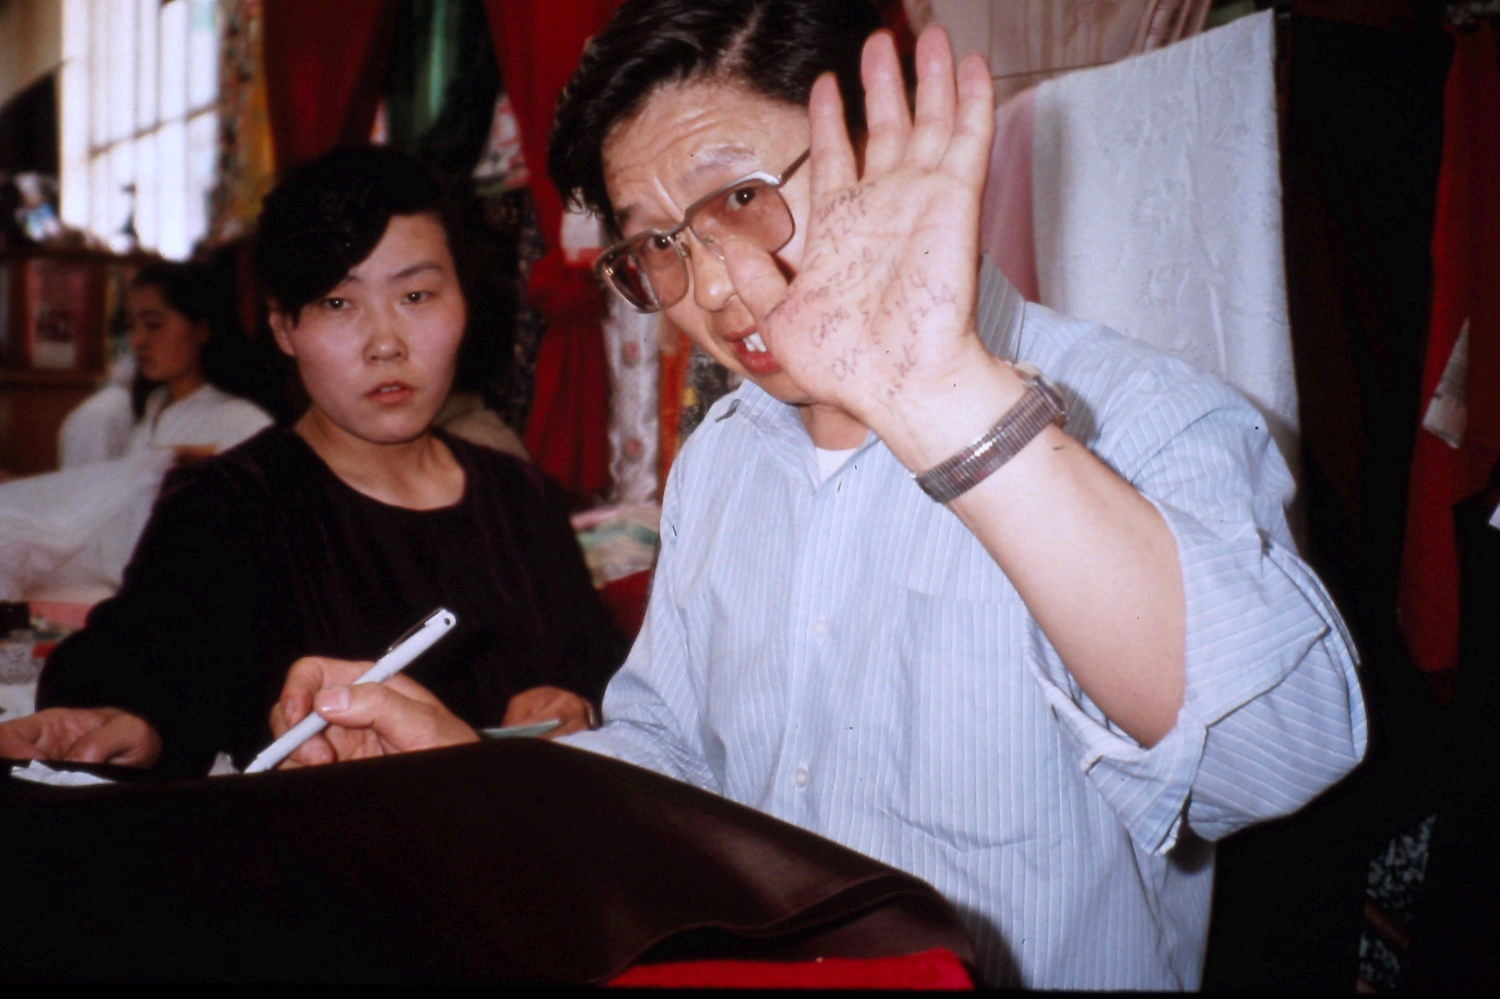 Li Zhangsheng tracks our silk purchases on his hand. Lanzhou, China, May 1990. Photo: Cathy de Moll